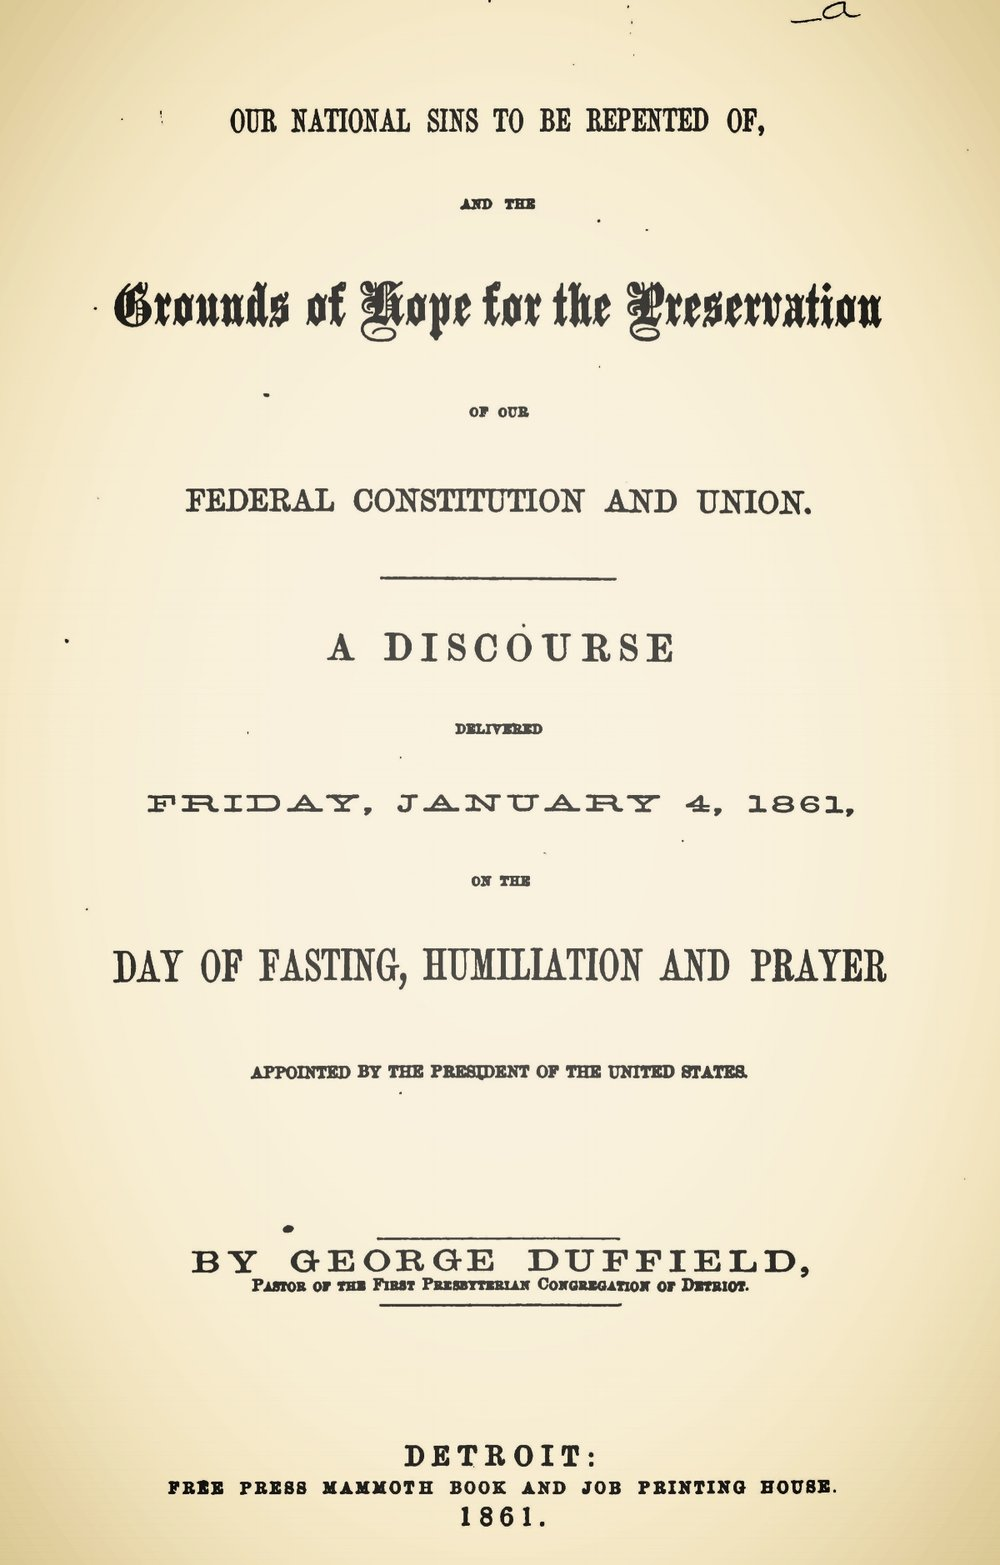 Duffield, IV, George, Our National Sins to be Repented Of Title Page.jpg